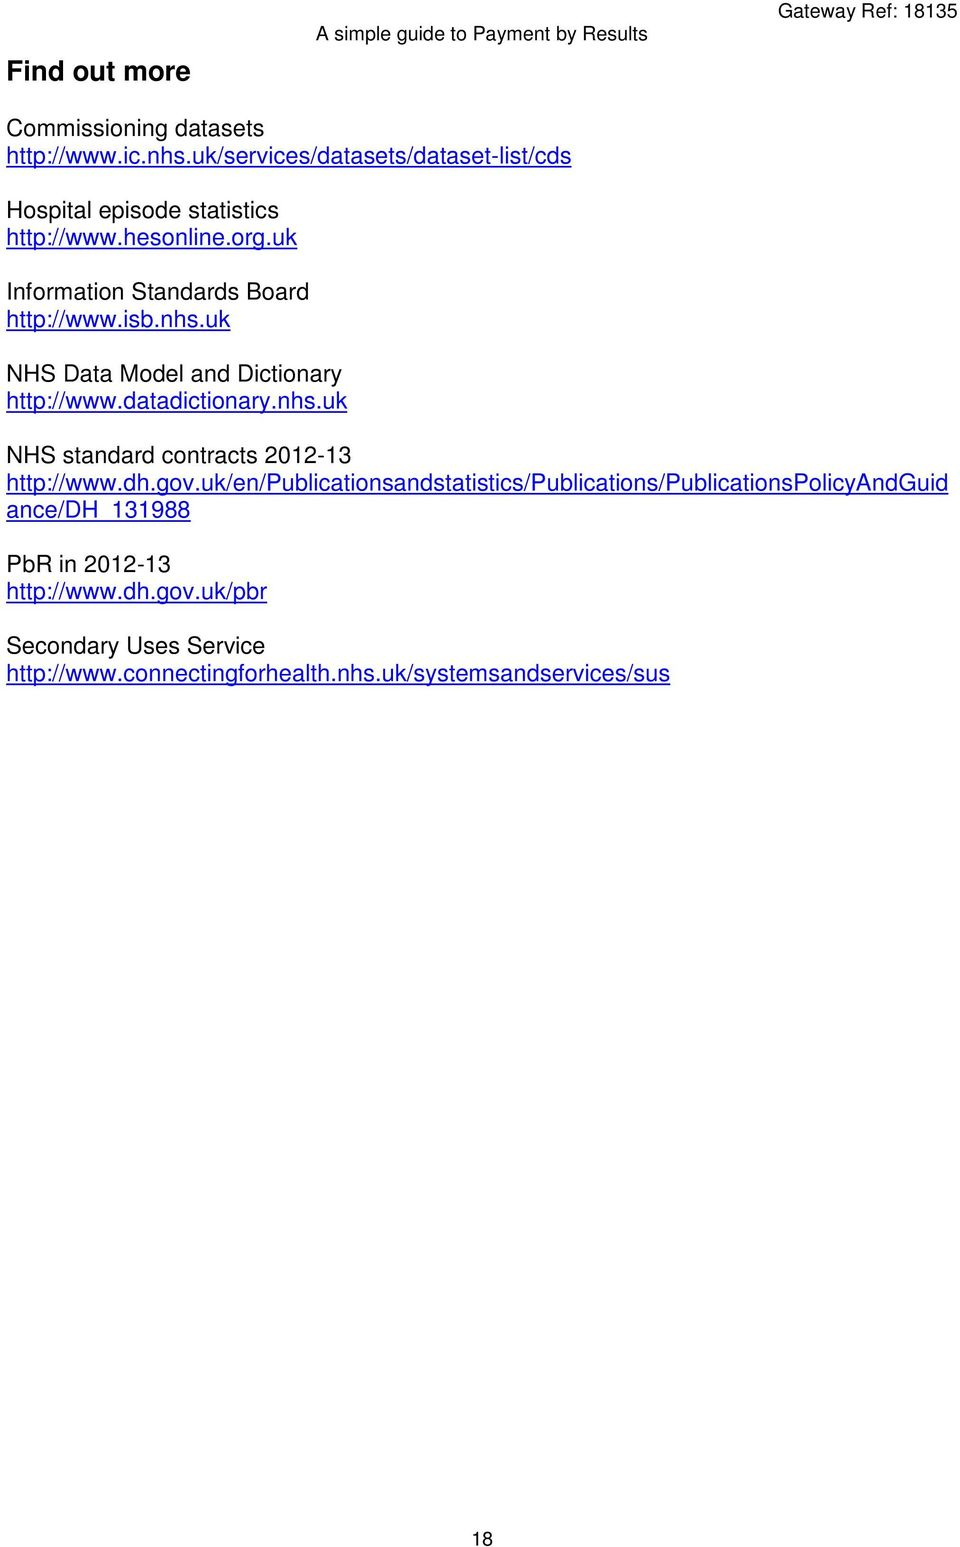 nhs.uk NHS Data Model and Dictionary http://www.datadictionary.nhs.uk NHS standard contracts 2012-13 http://www.dh.gov.